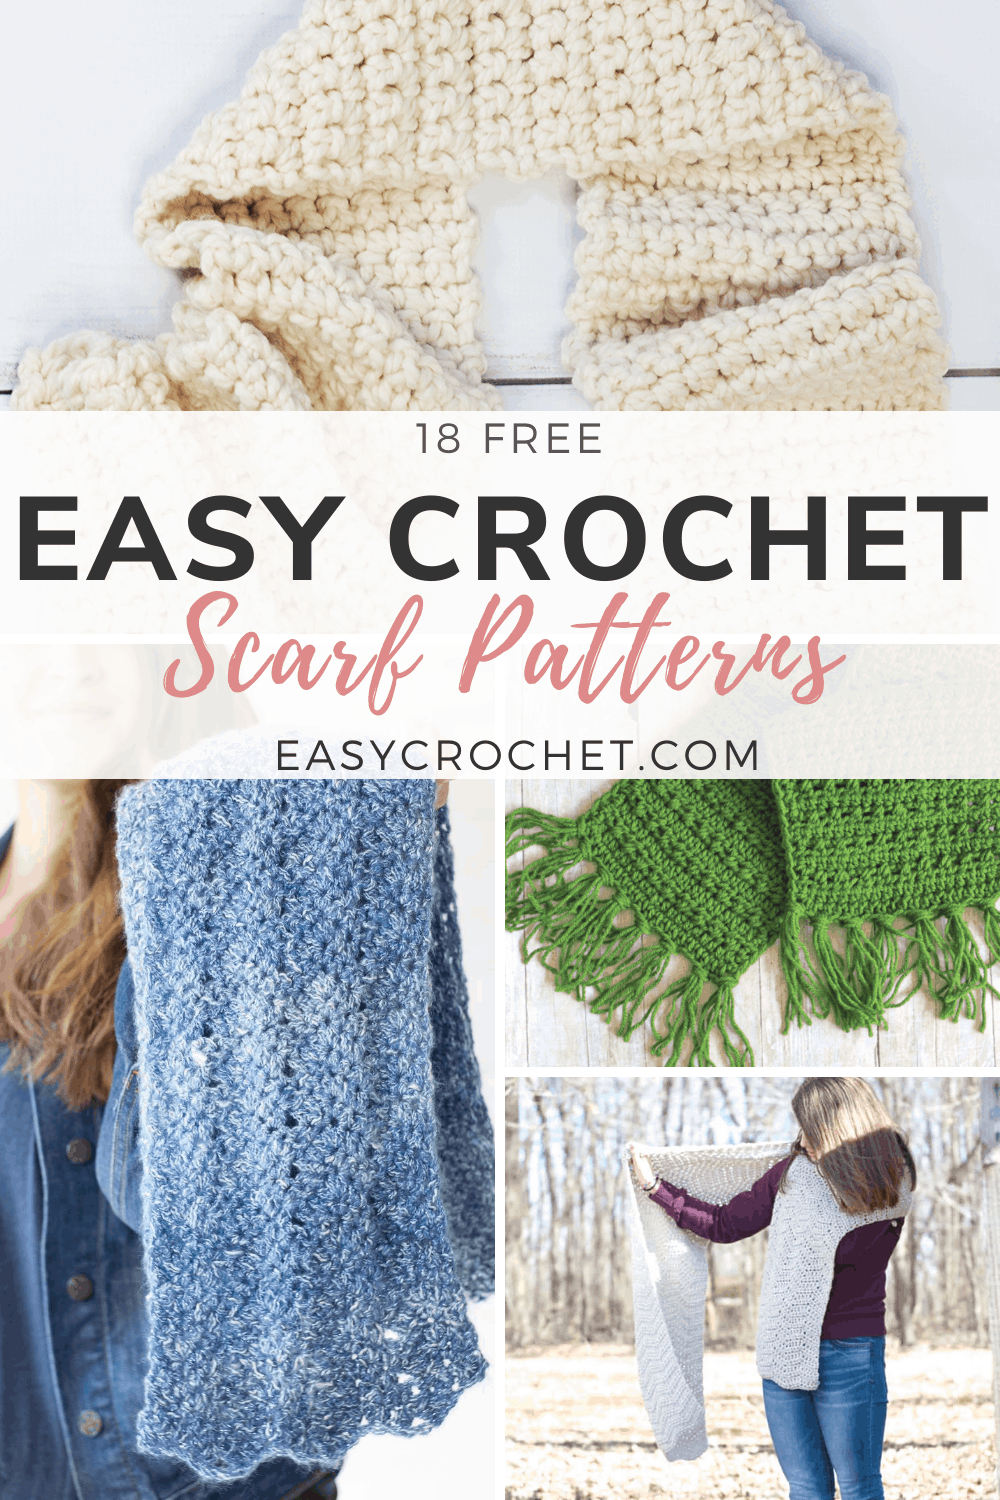 Easy to Crochet Scarf Patterns that are all FREE crochet patterns. via @easycrochetcom